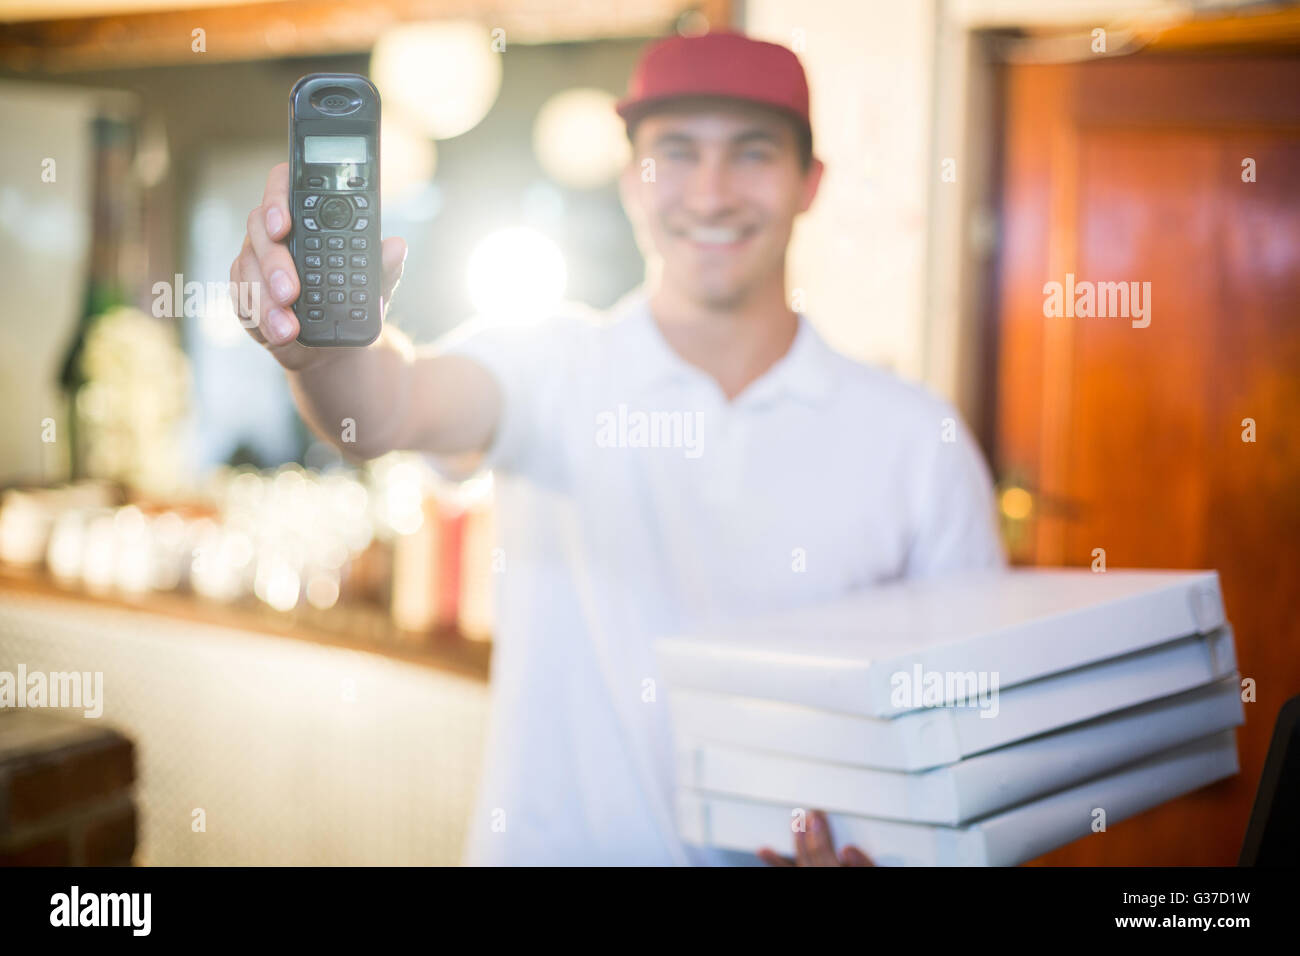 Pizza delivery man holding phone - Stock Image